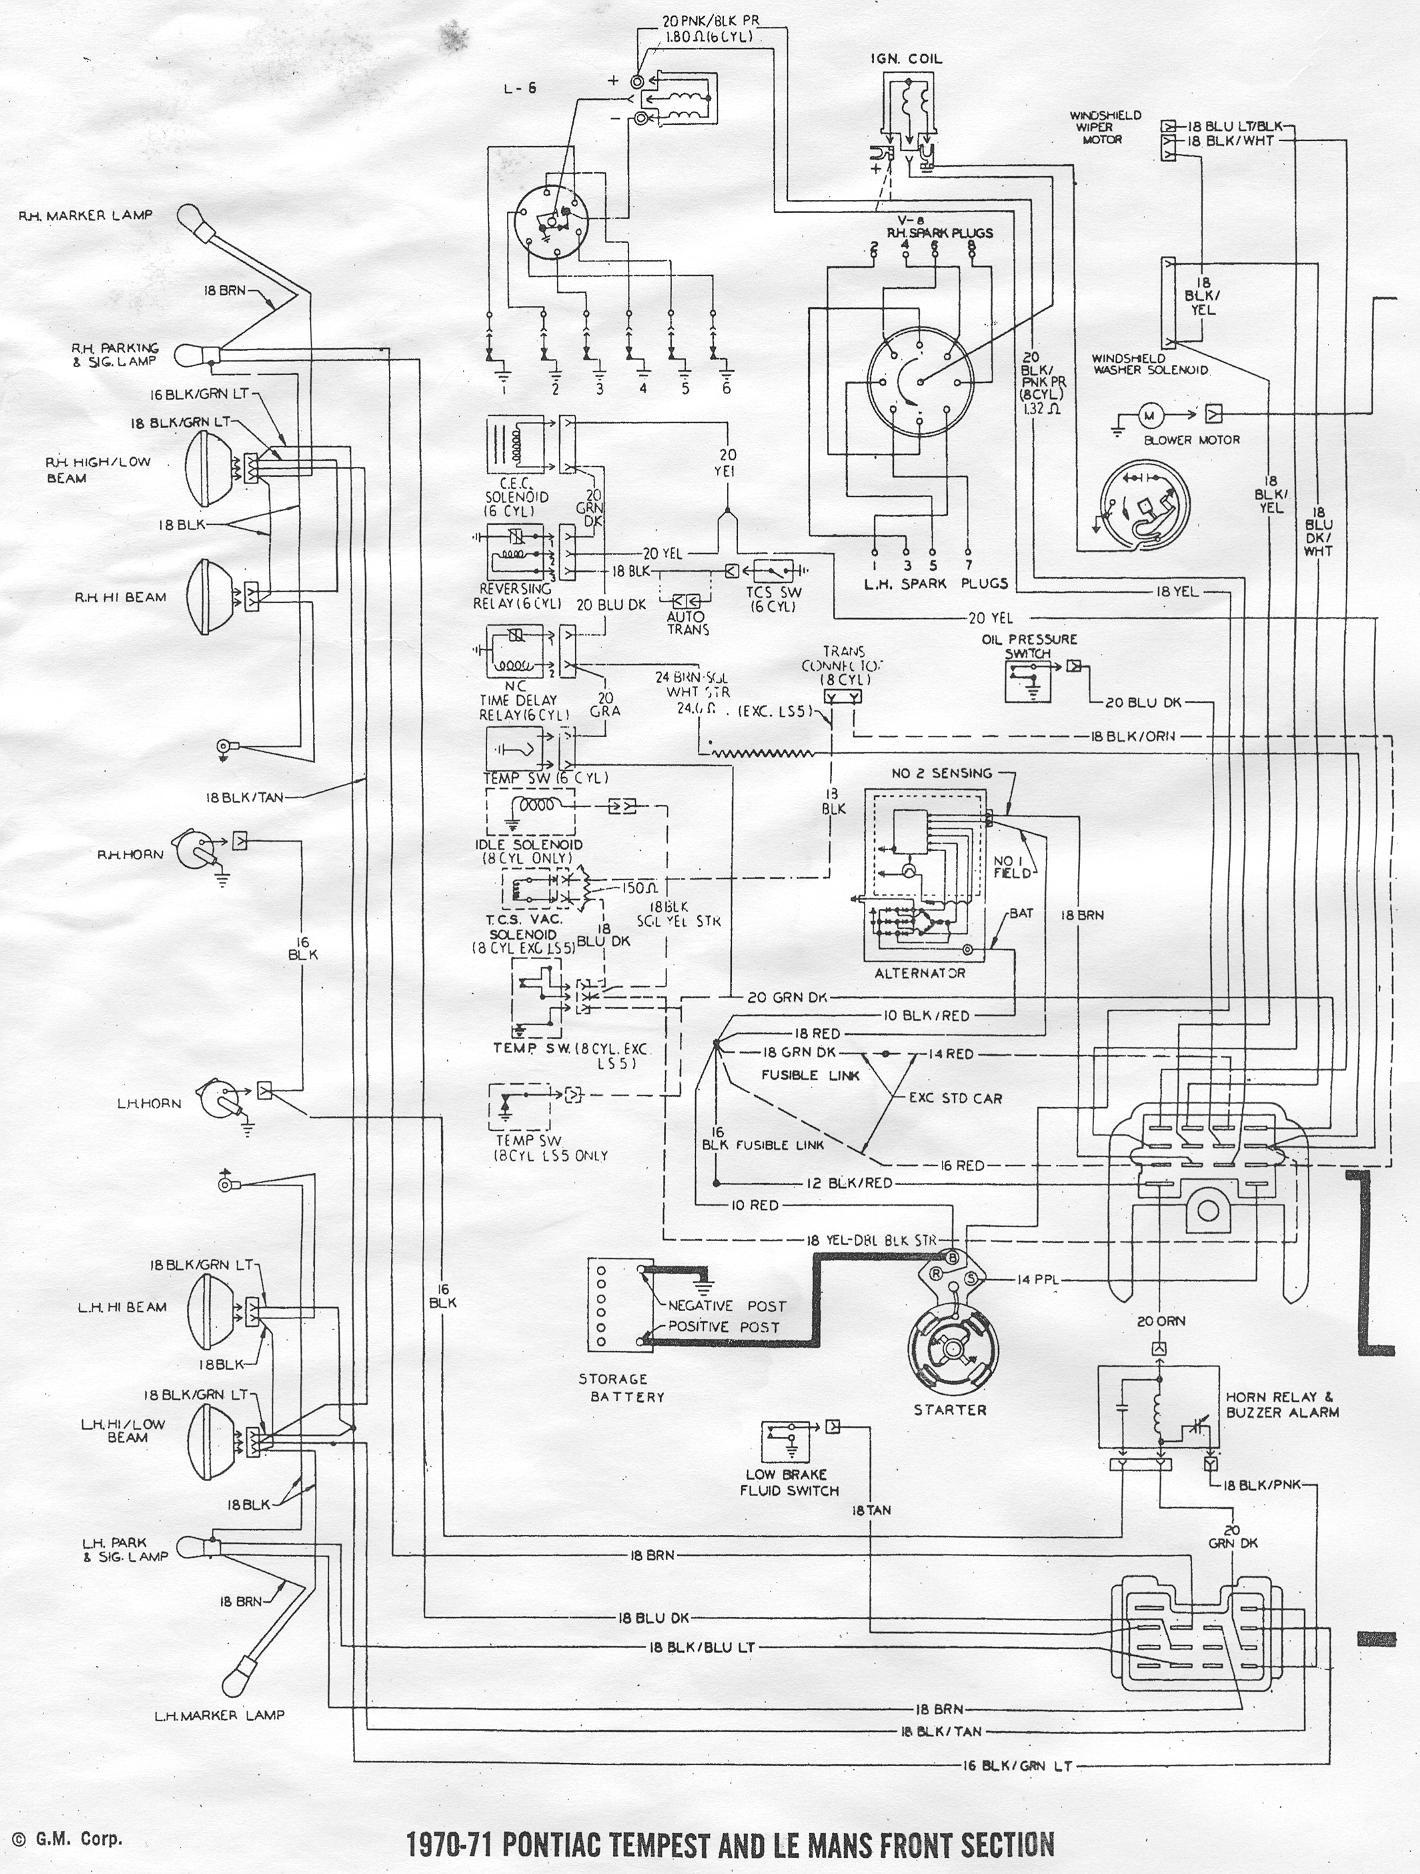 1973 pontiac firebird wiring diagram 1973 discover your wiring 1971 pontiac firebird wiring diagram 1971 printable wiring